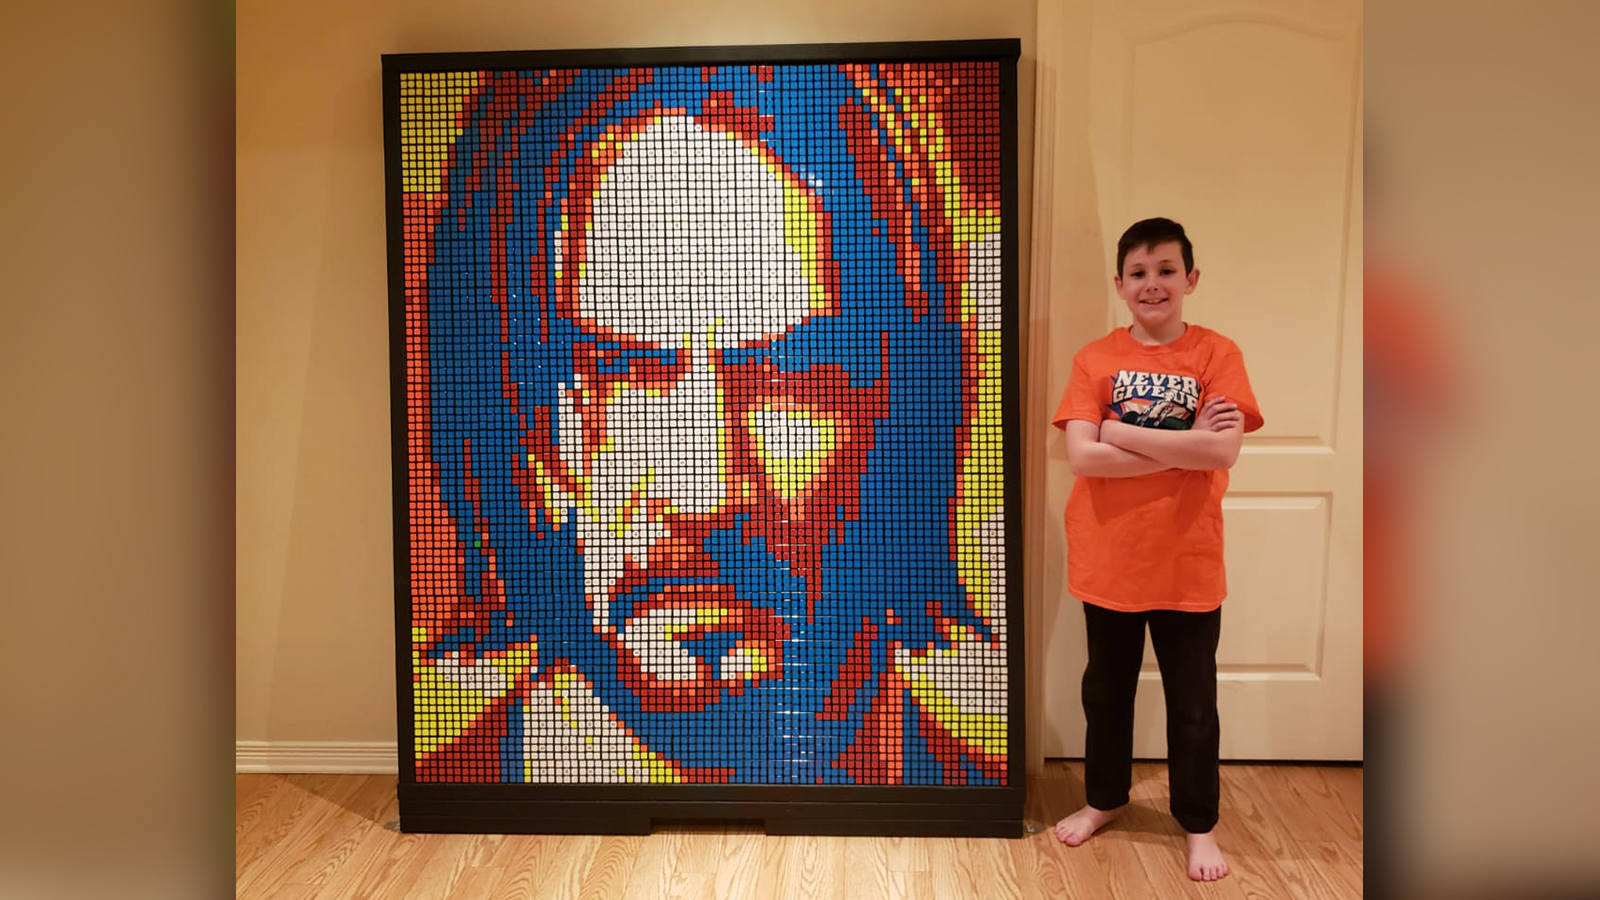 A 9-year-old created a portrait of John Cena with 750 Rubik's Cubes. His 'superpower' helped